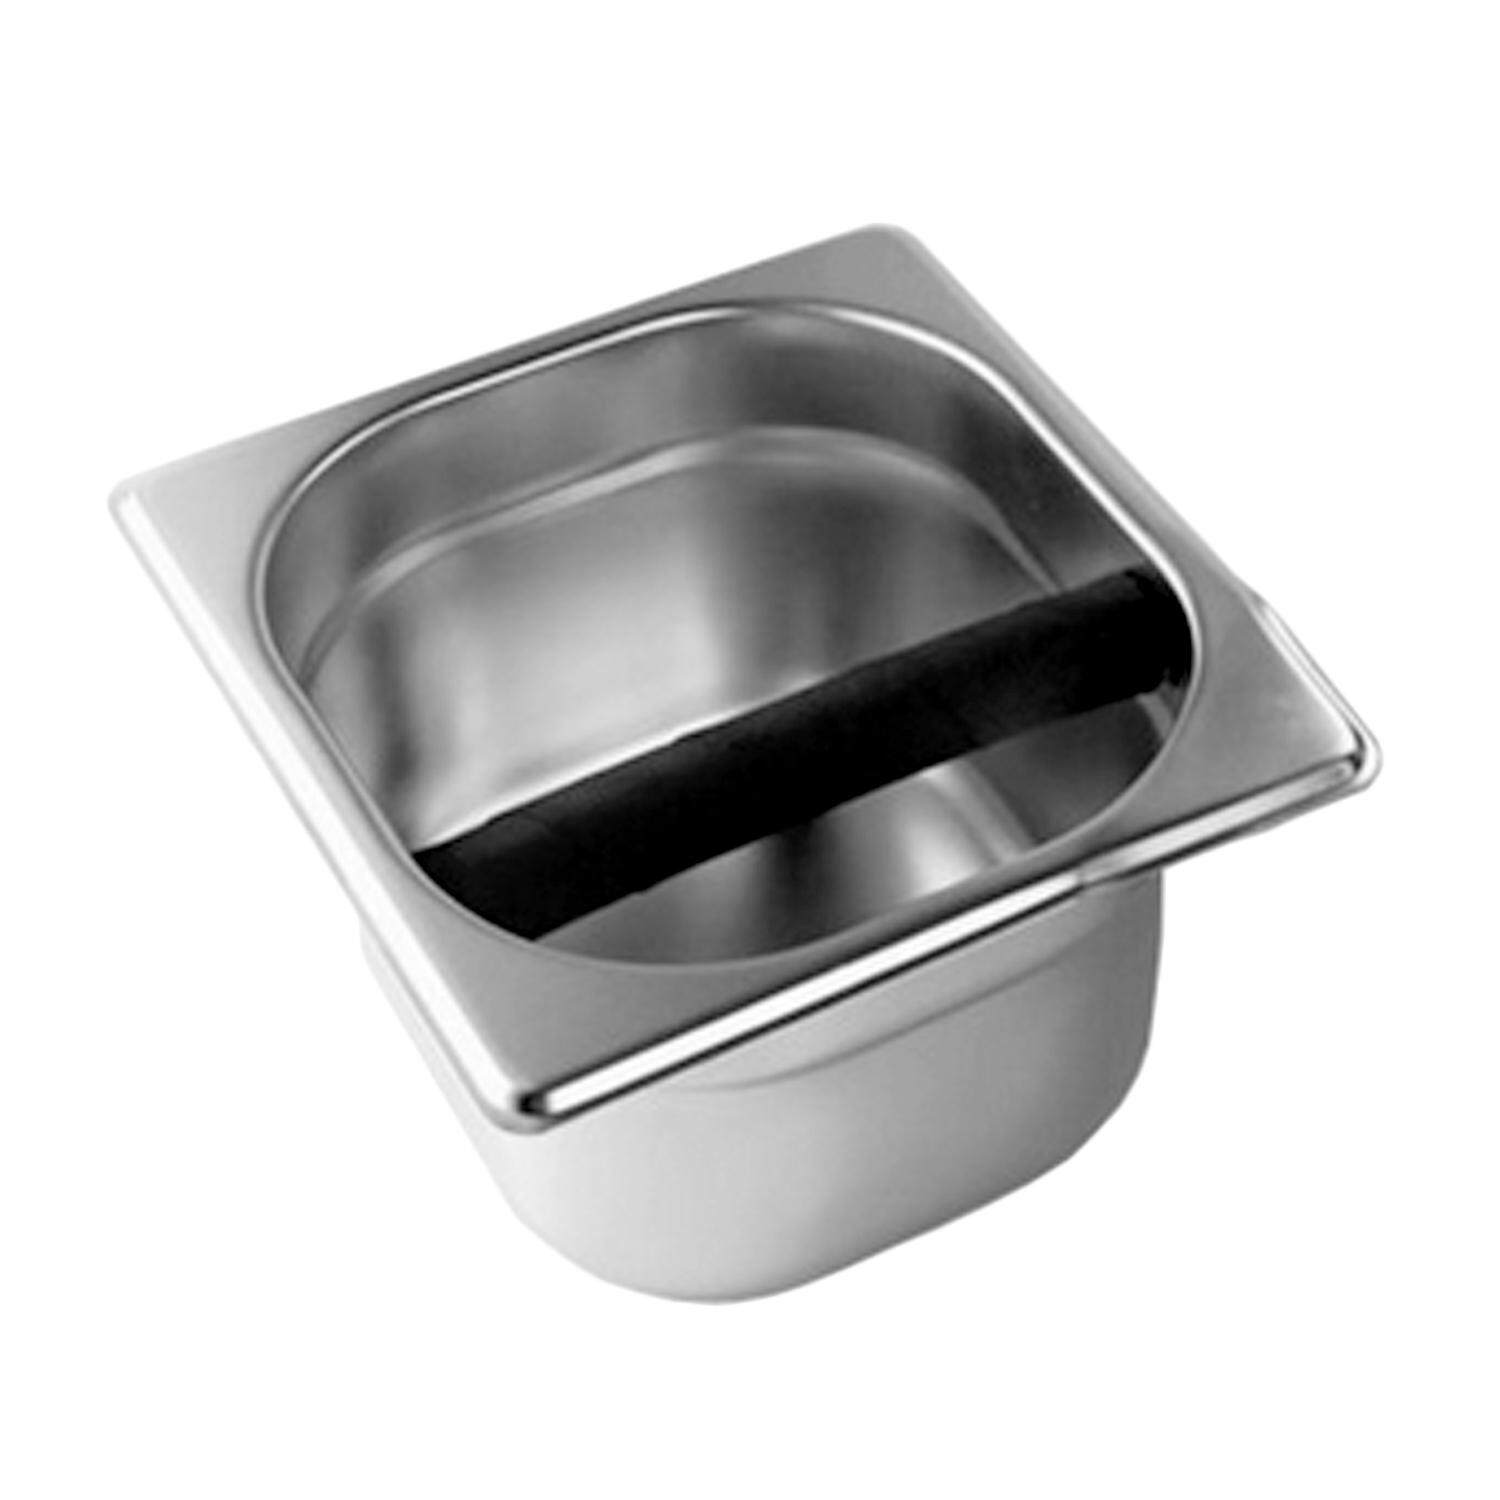 Durable Stainless Steel Espresso Coffee Knock Box Container For Home Cafe Restaurants Bars Size S By Jelly Store.